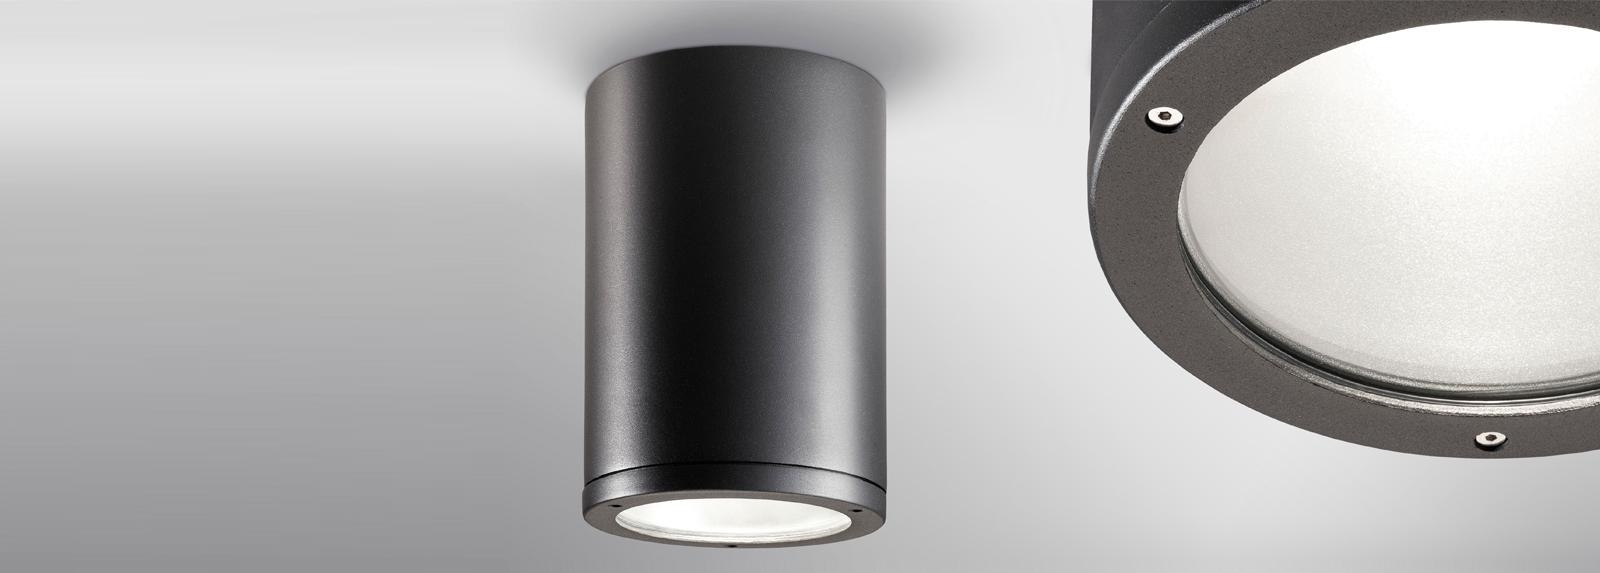 Outdoor Ceiling Downlights With Regard To Recent Rovasi. Lighting Fixtures Manufacturer (View 11 of 20)